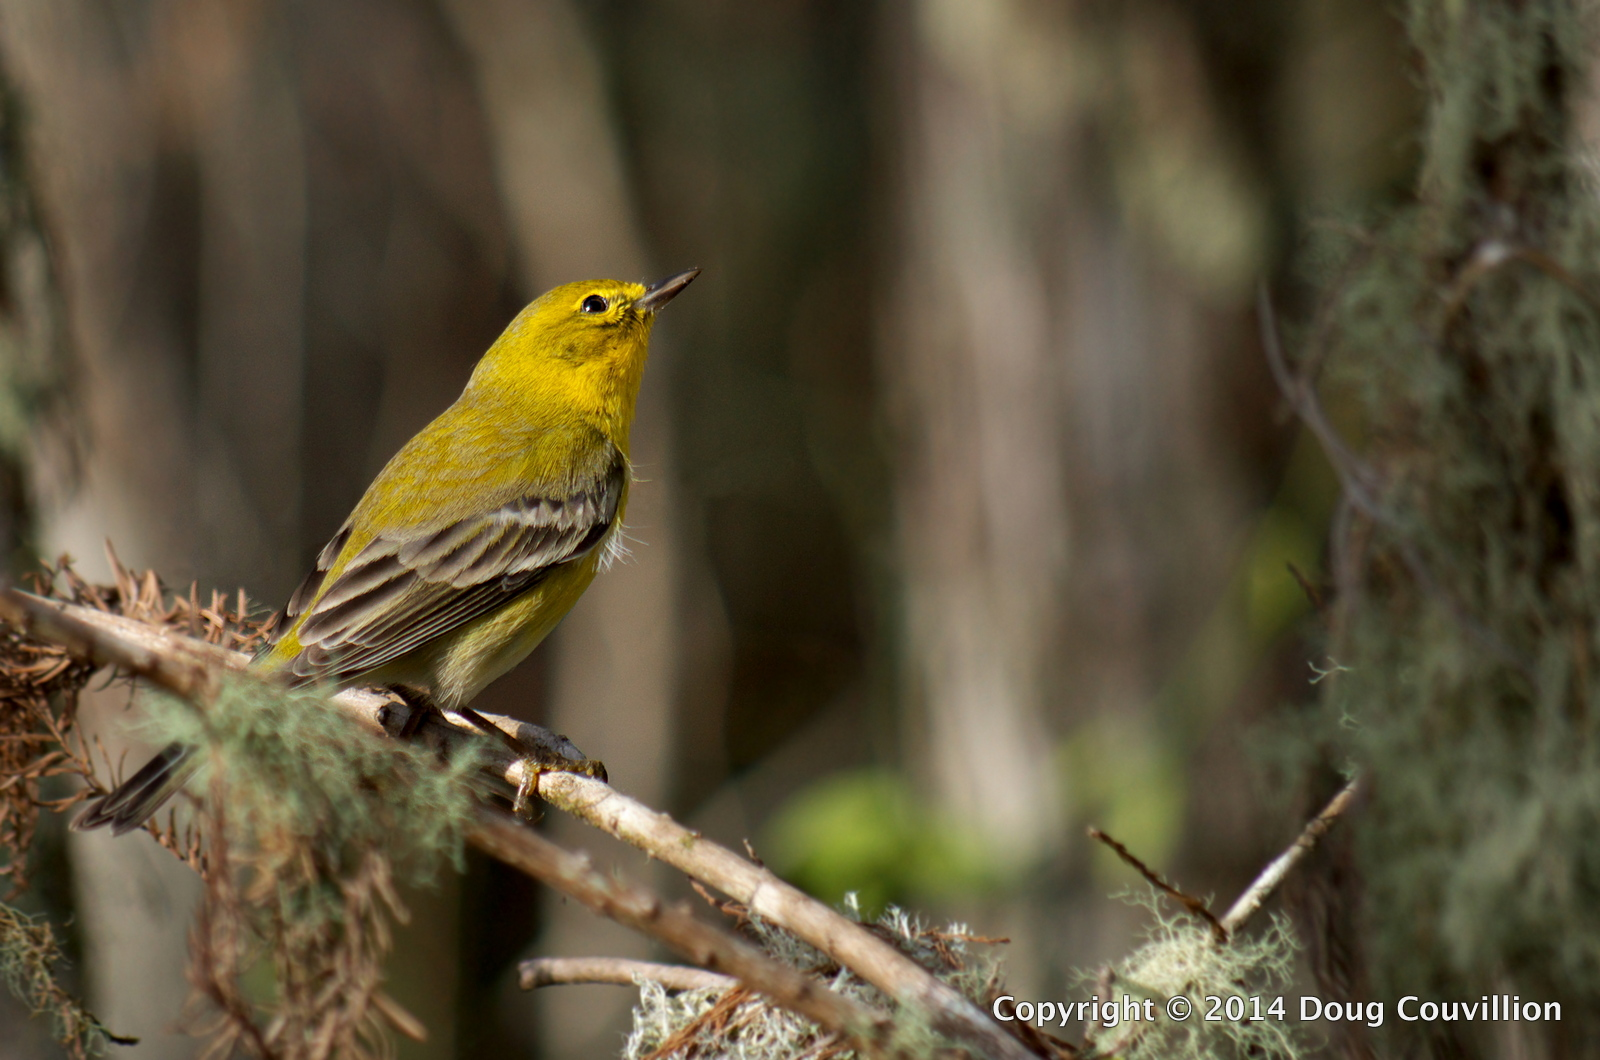 photograph of a Pine Warbler in Corkscrew Swamp Sanctuary, Naples, Florida